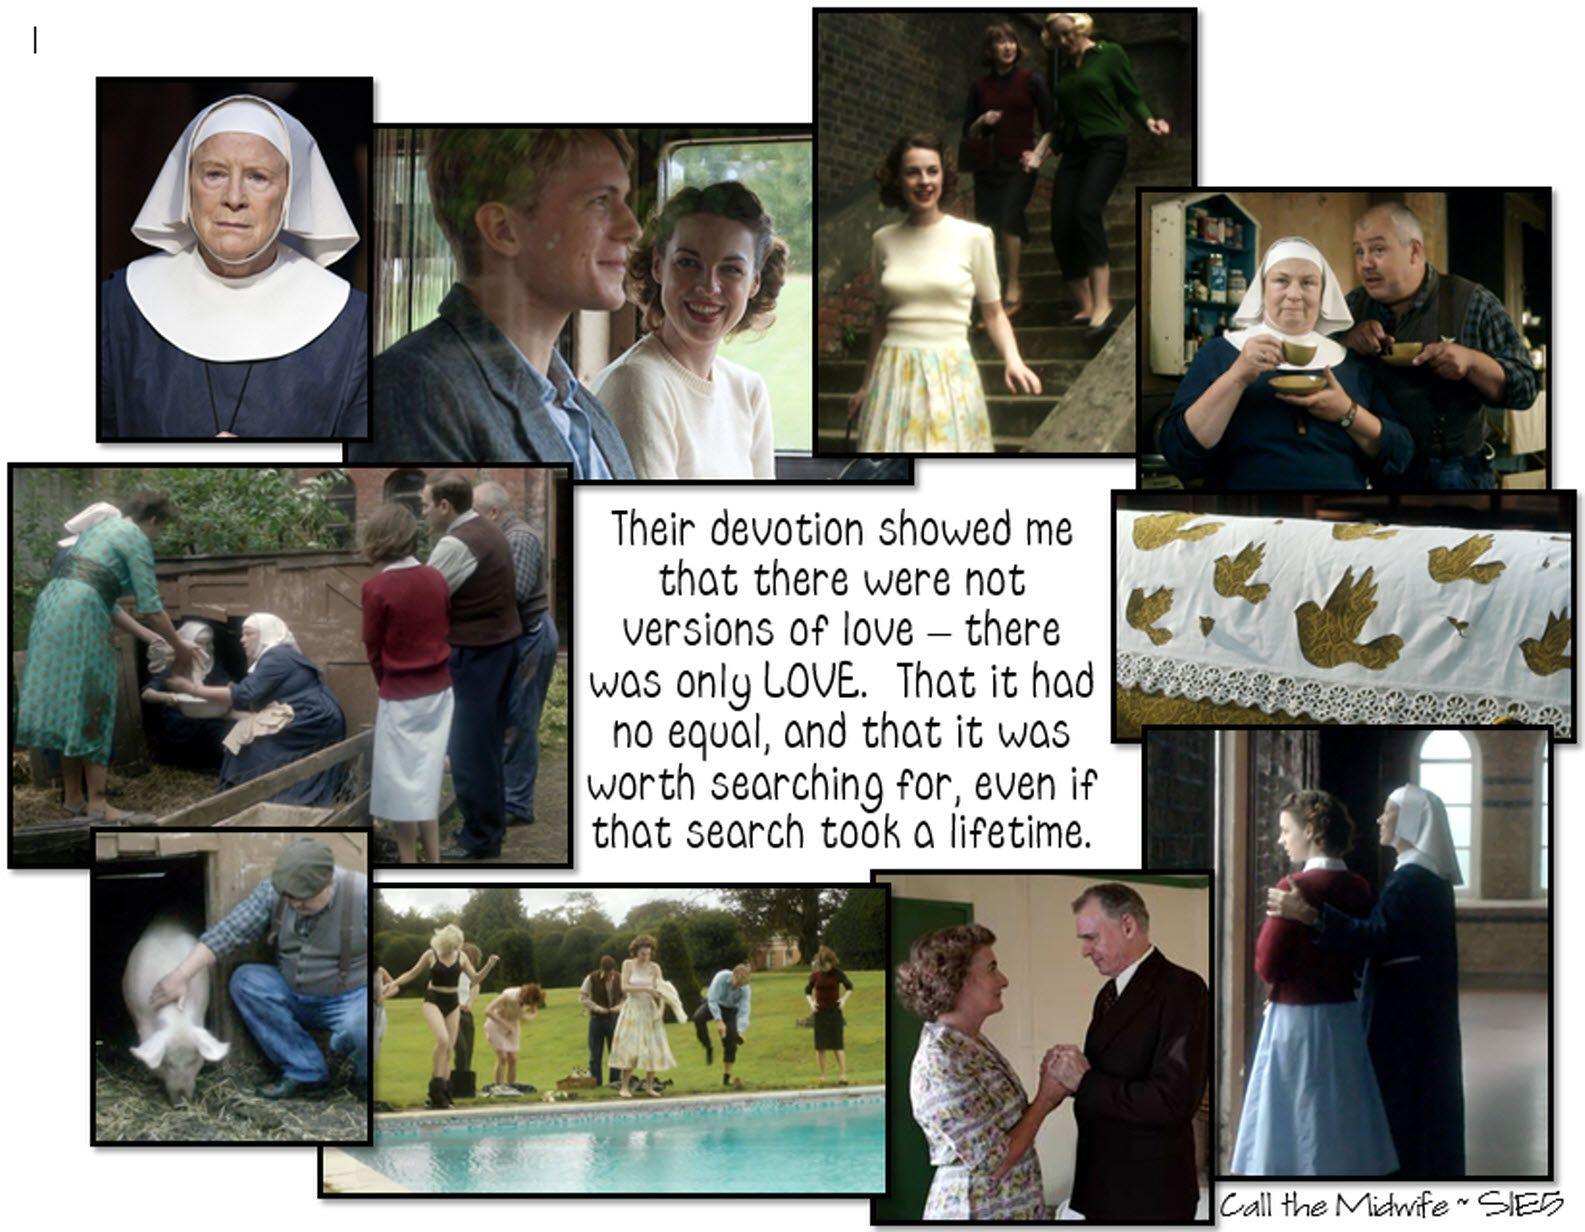 Call the Midwife season 1..... Episode 5 Collage Quote NZ